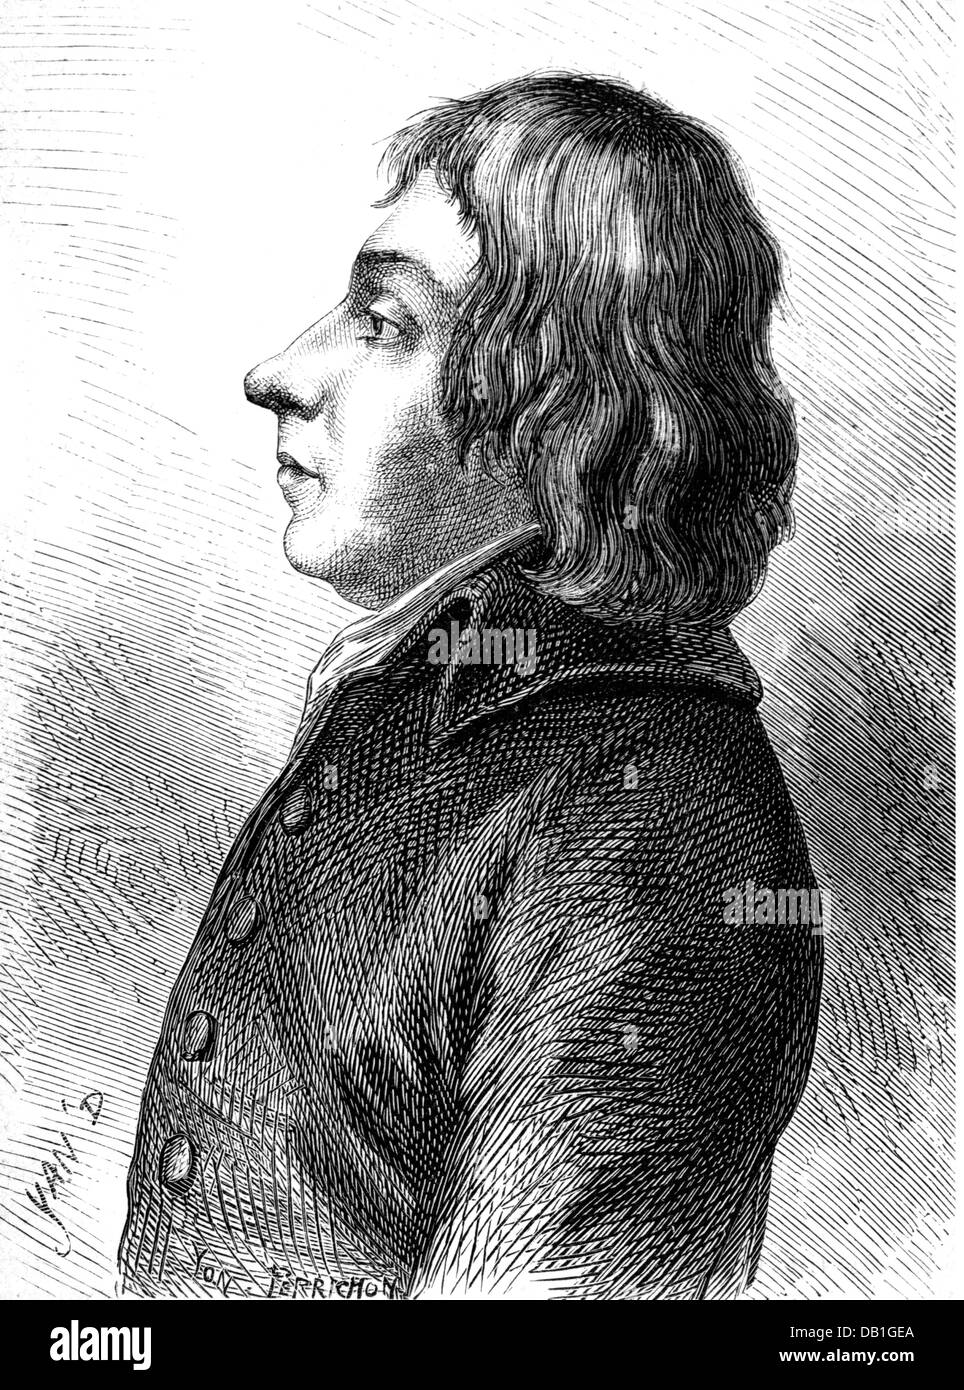 Bonnier d'Alco, Antoine, 29.9.1750 - 28.4.1799, French politician and diplomat, portrait, circa 1795, wood engraving, - Stock Image